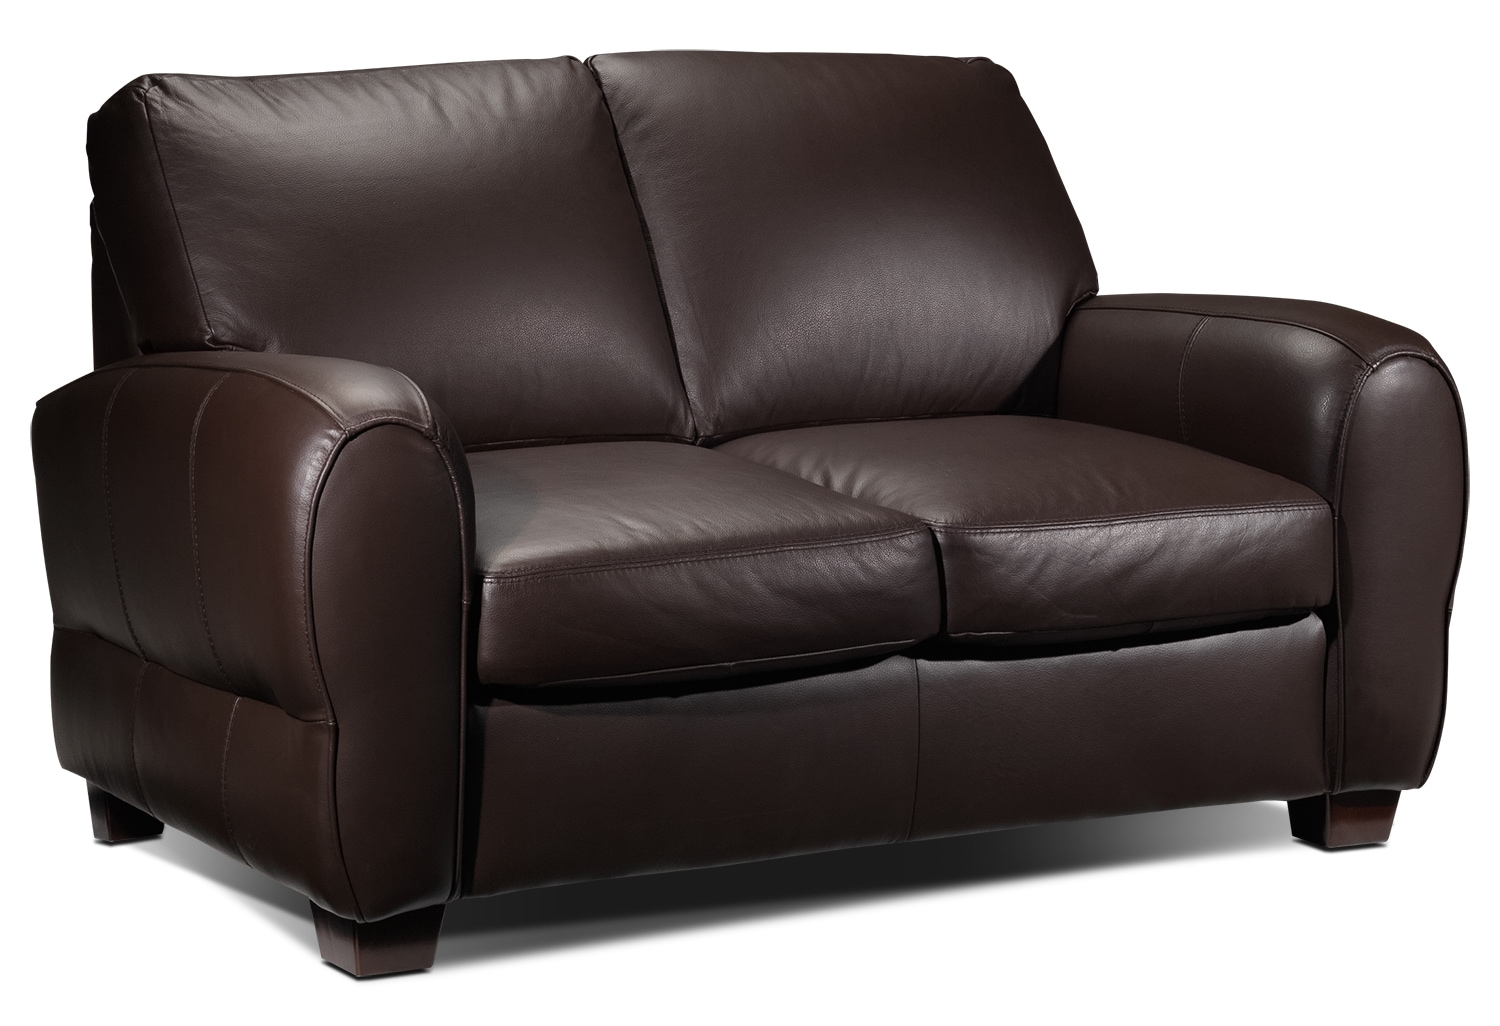 Living Room Furniture - Sheldon Loveseat